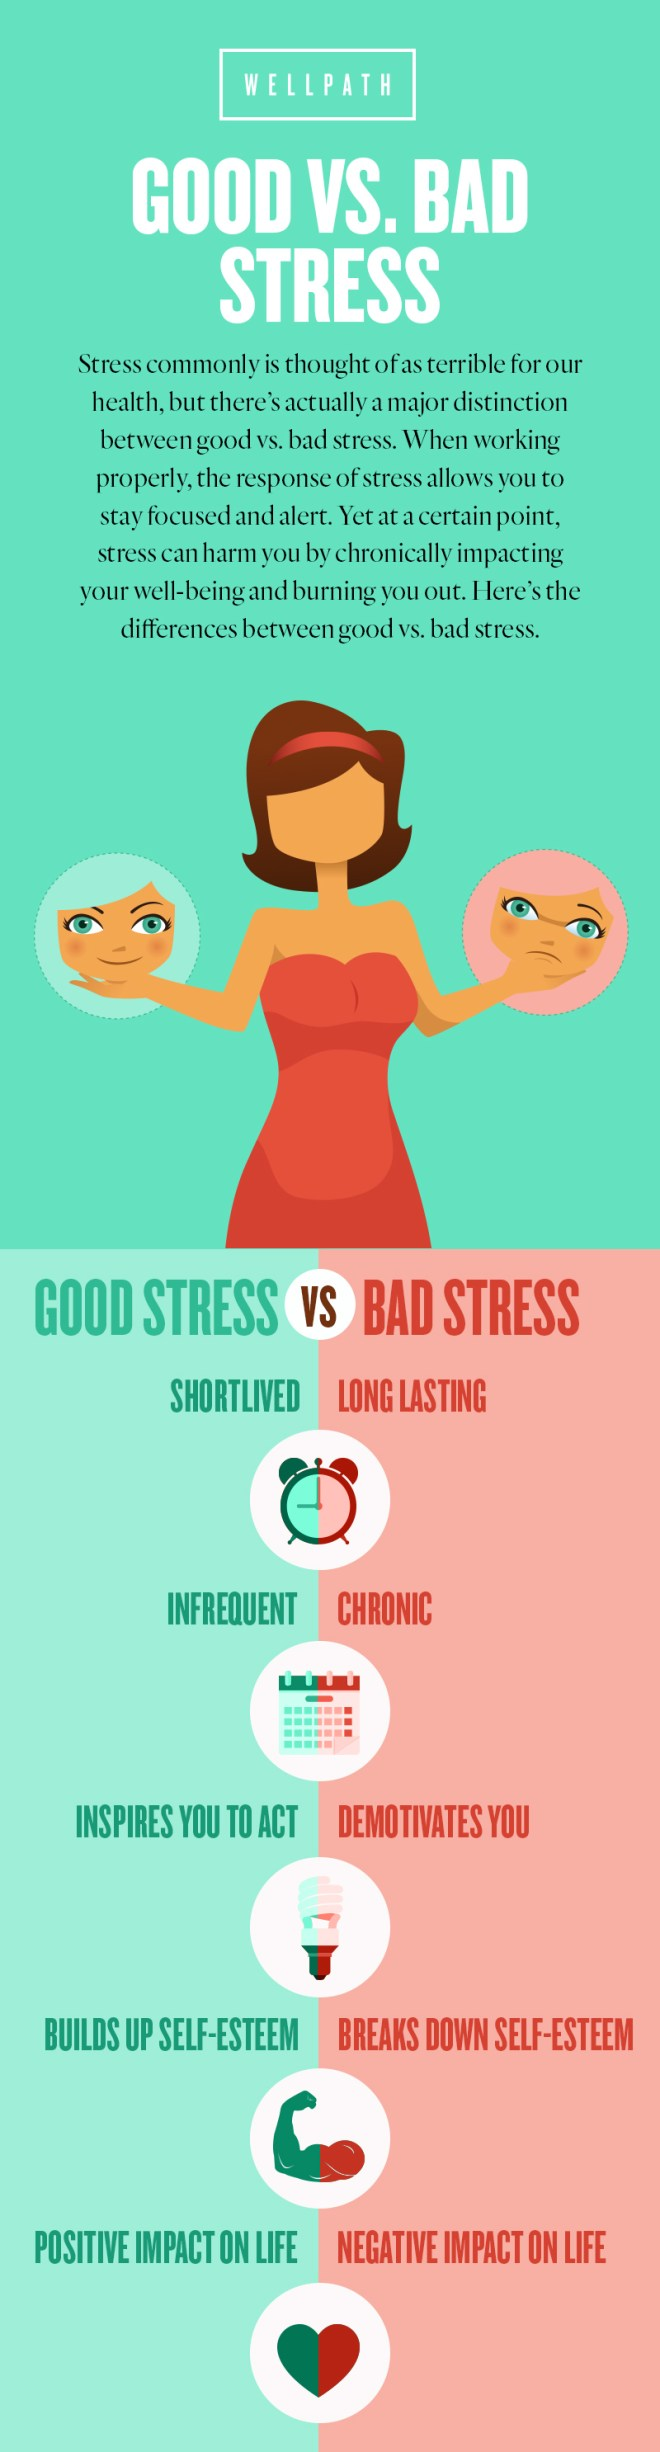 WellPath-Infographic-GoodvsBad_Stress